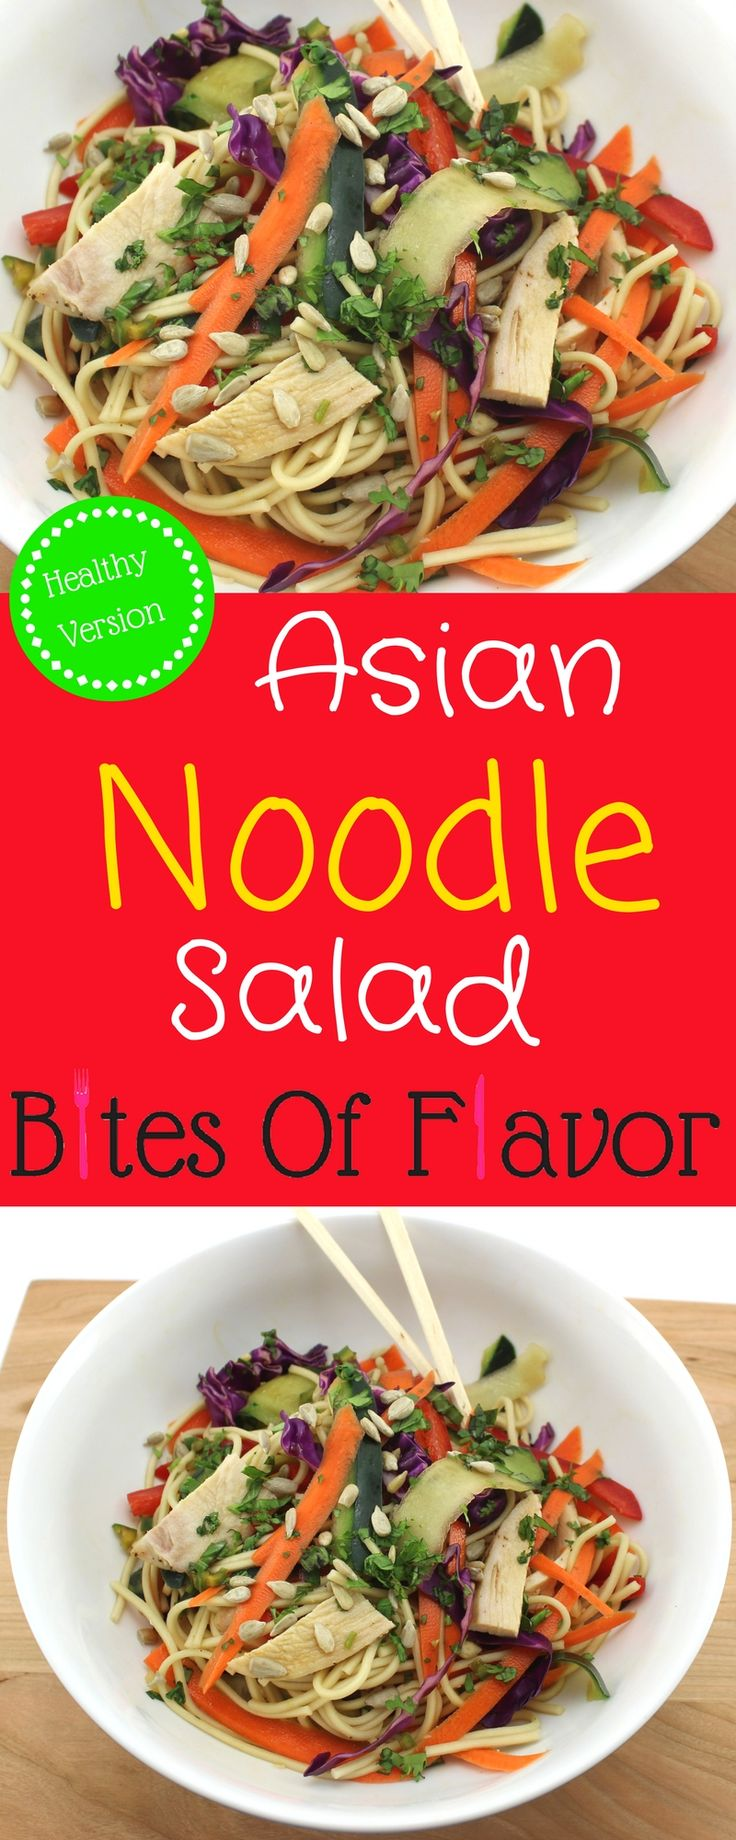 Asian Noodle Salad Easy To Make With Fresh Ingredients Perfect For A Grab On